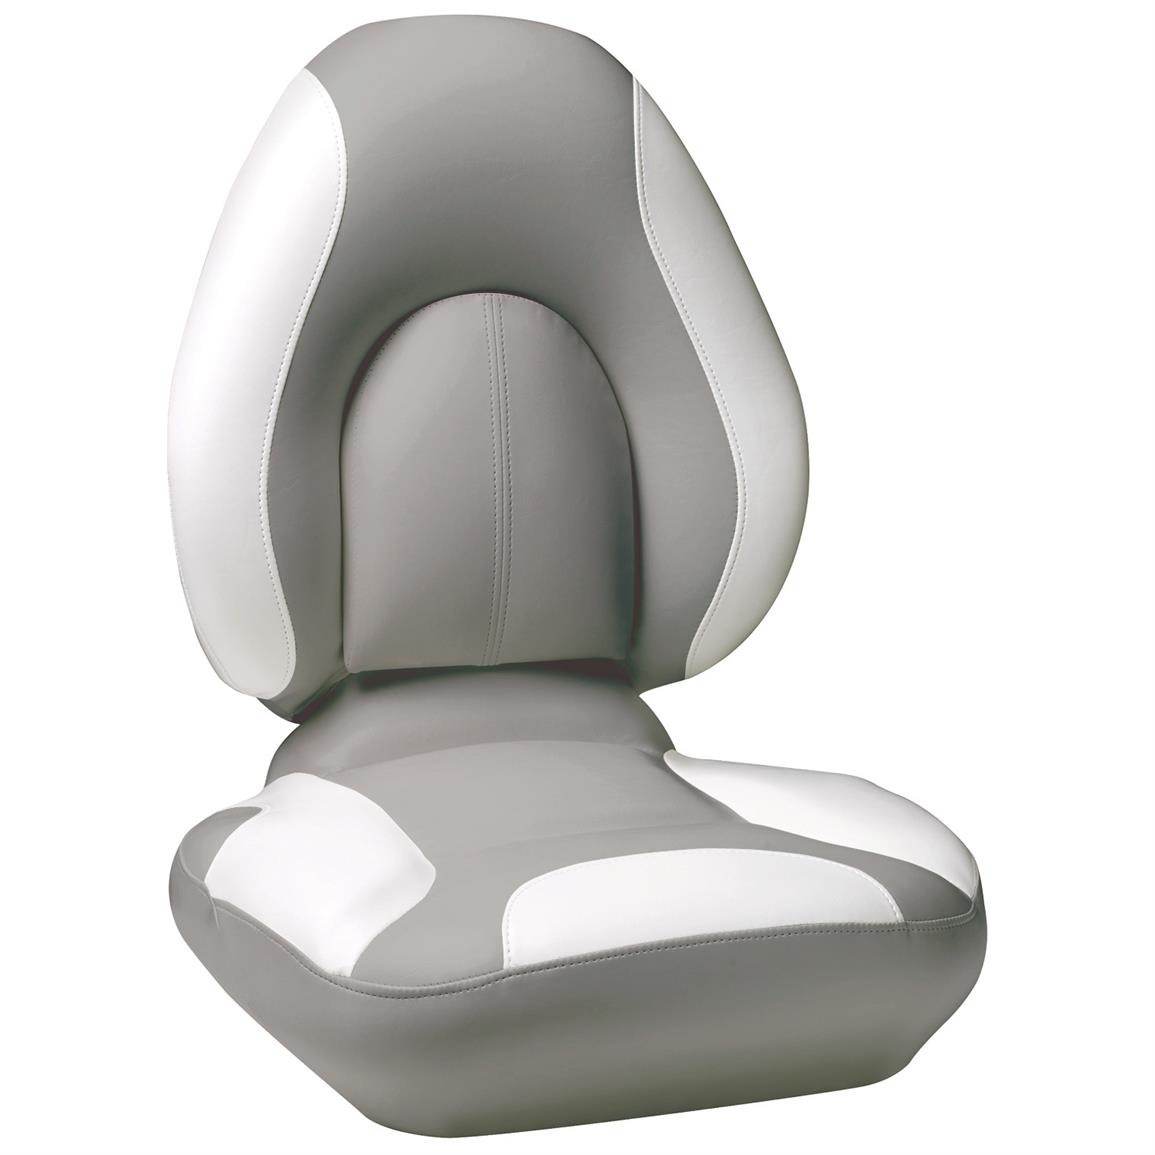 Attwood® Centric SAS™ Boat Seat, Gray Base Color / Bright White